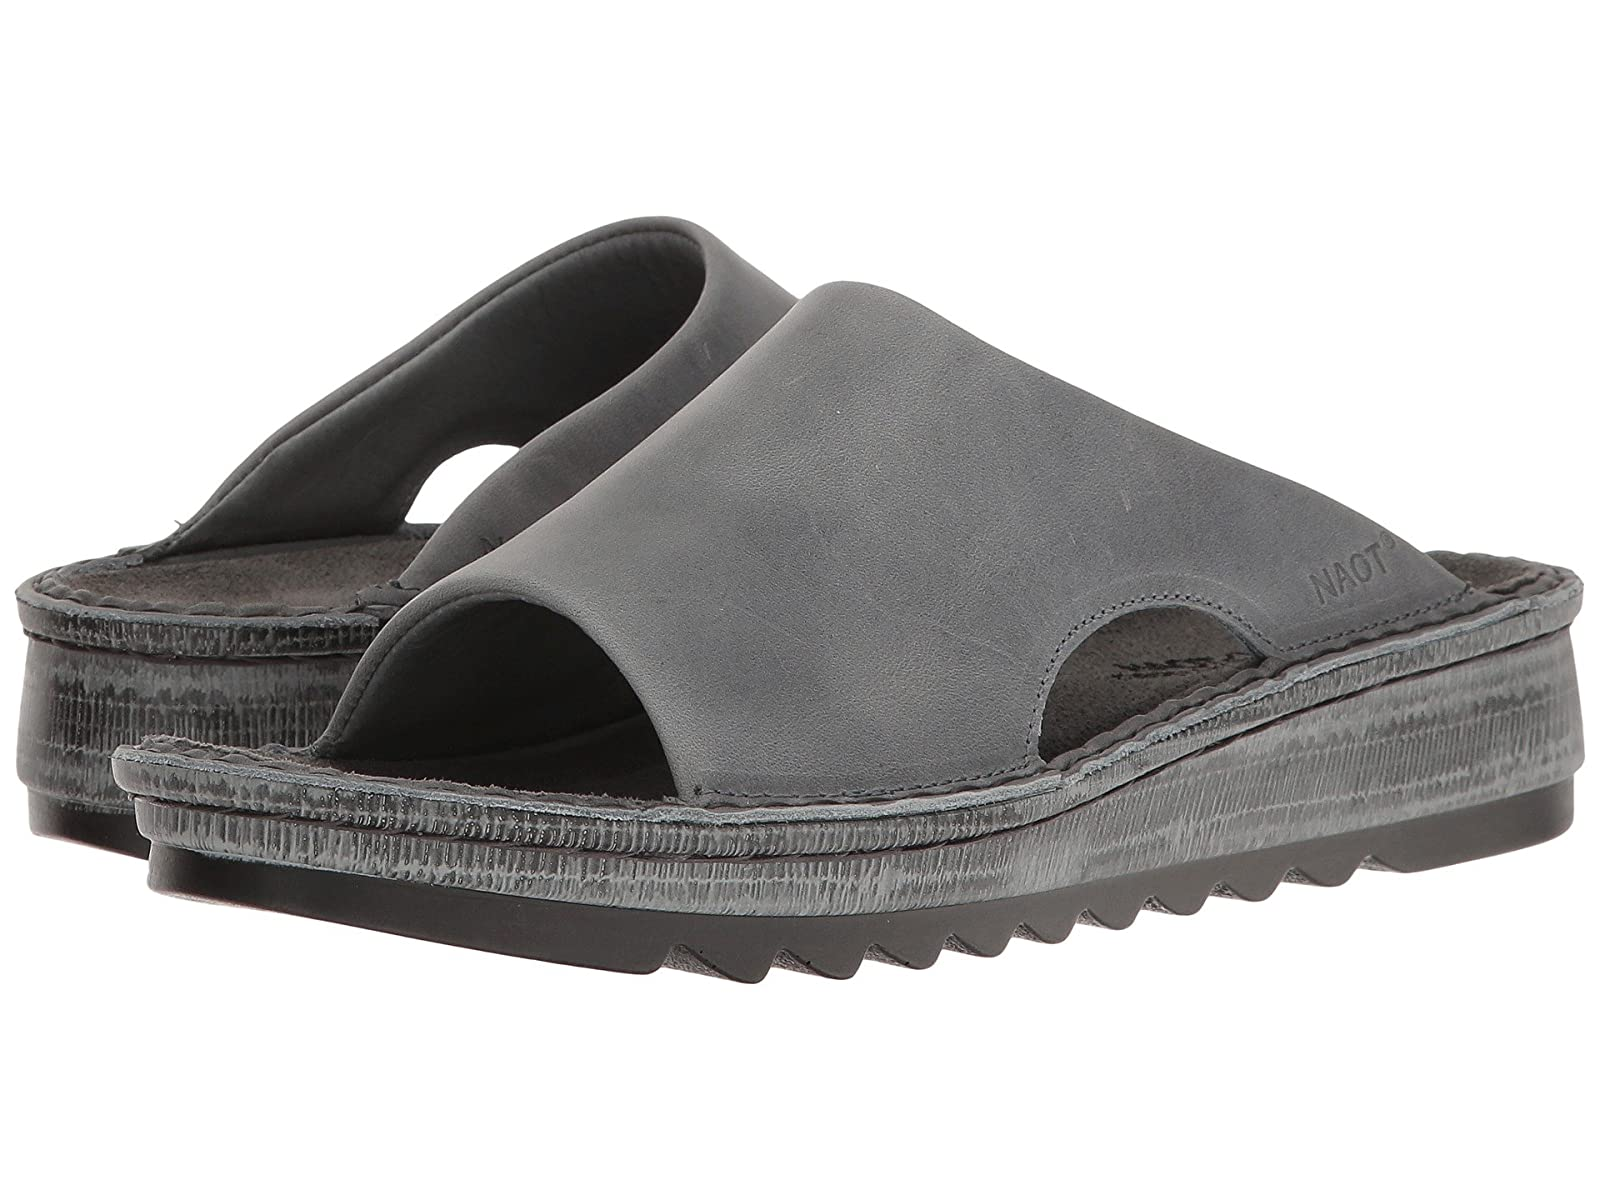 Naot ArdisiaAtmospheric grades have affordable shoes